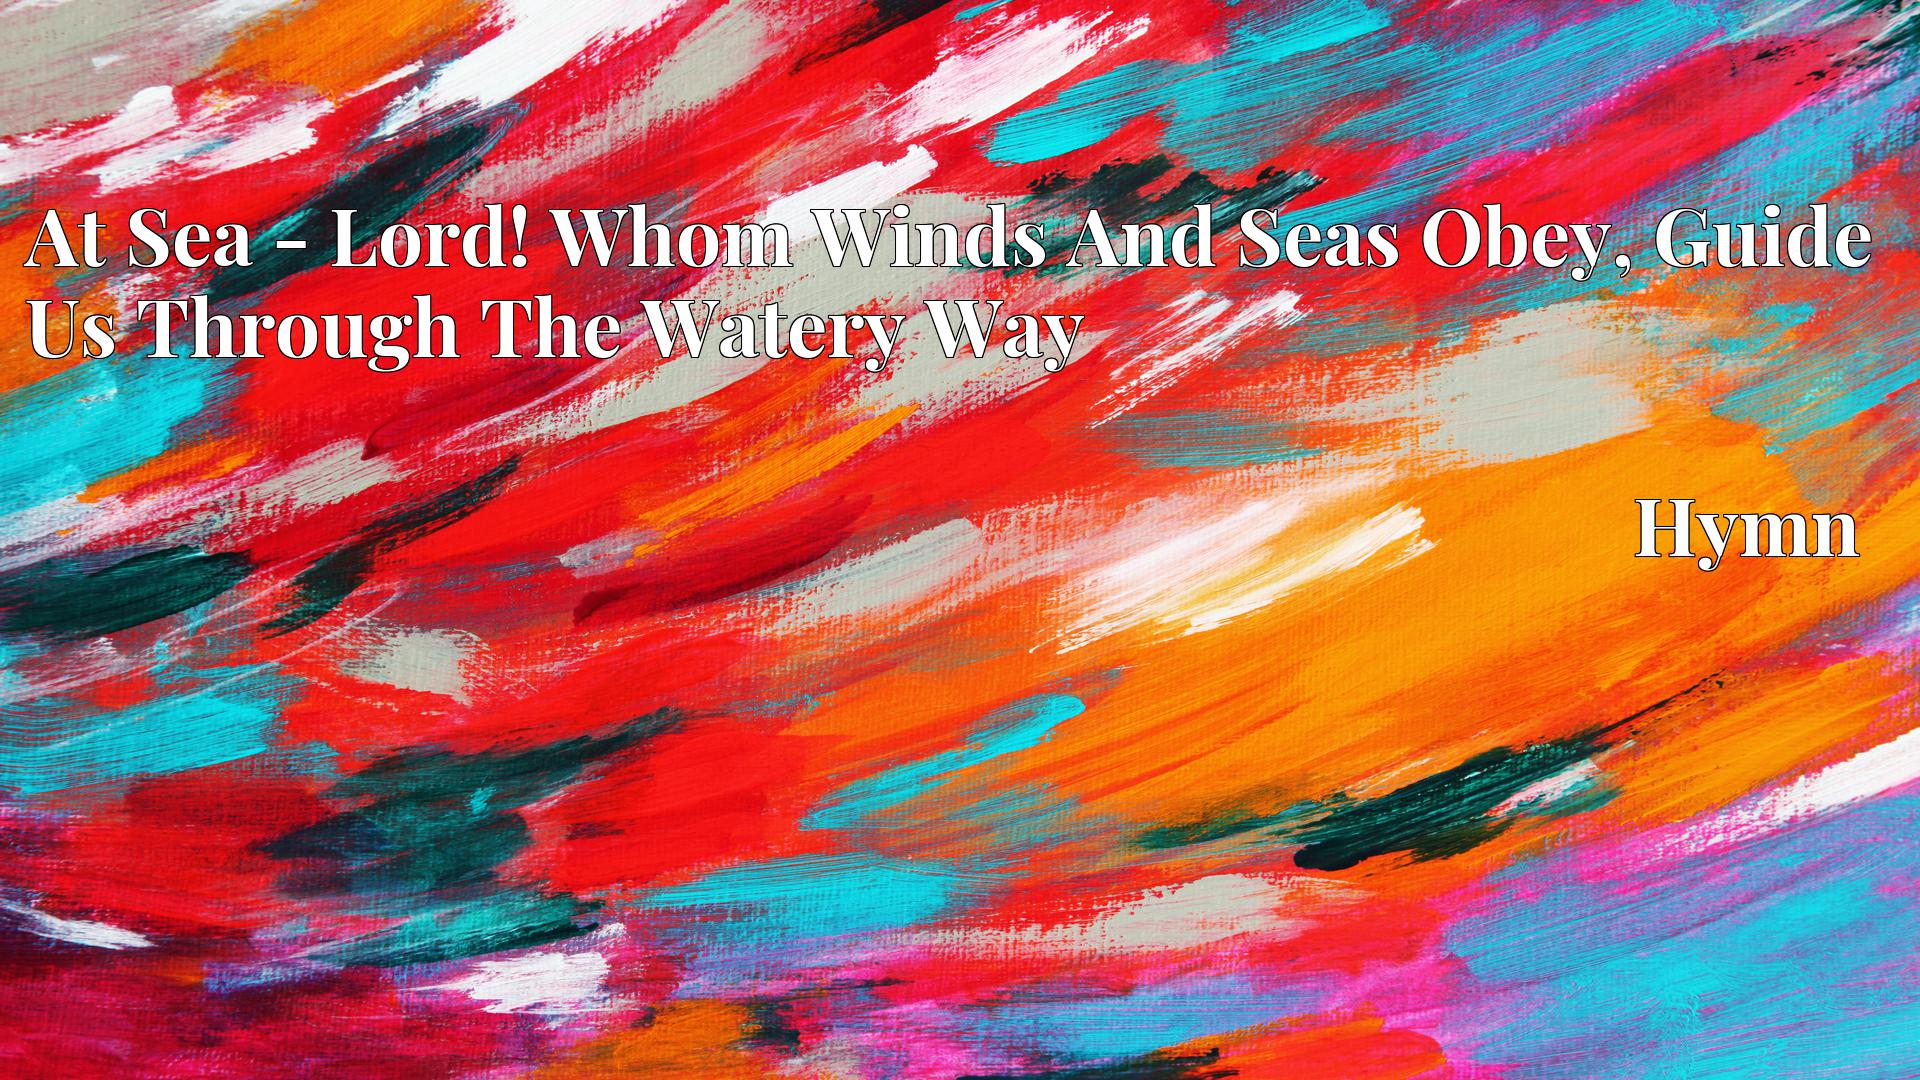 At Sea - Lord! Whom Winds And Seas Obey, Guide Us Through The Watery Way - Hymn